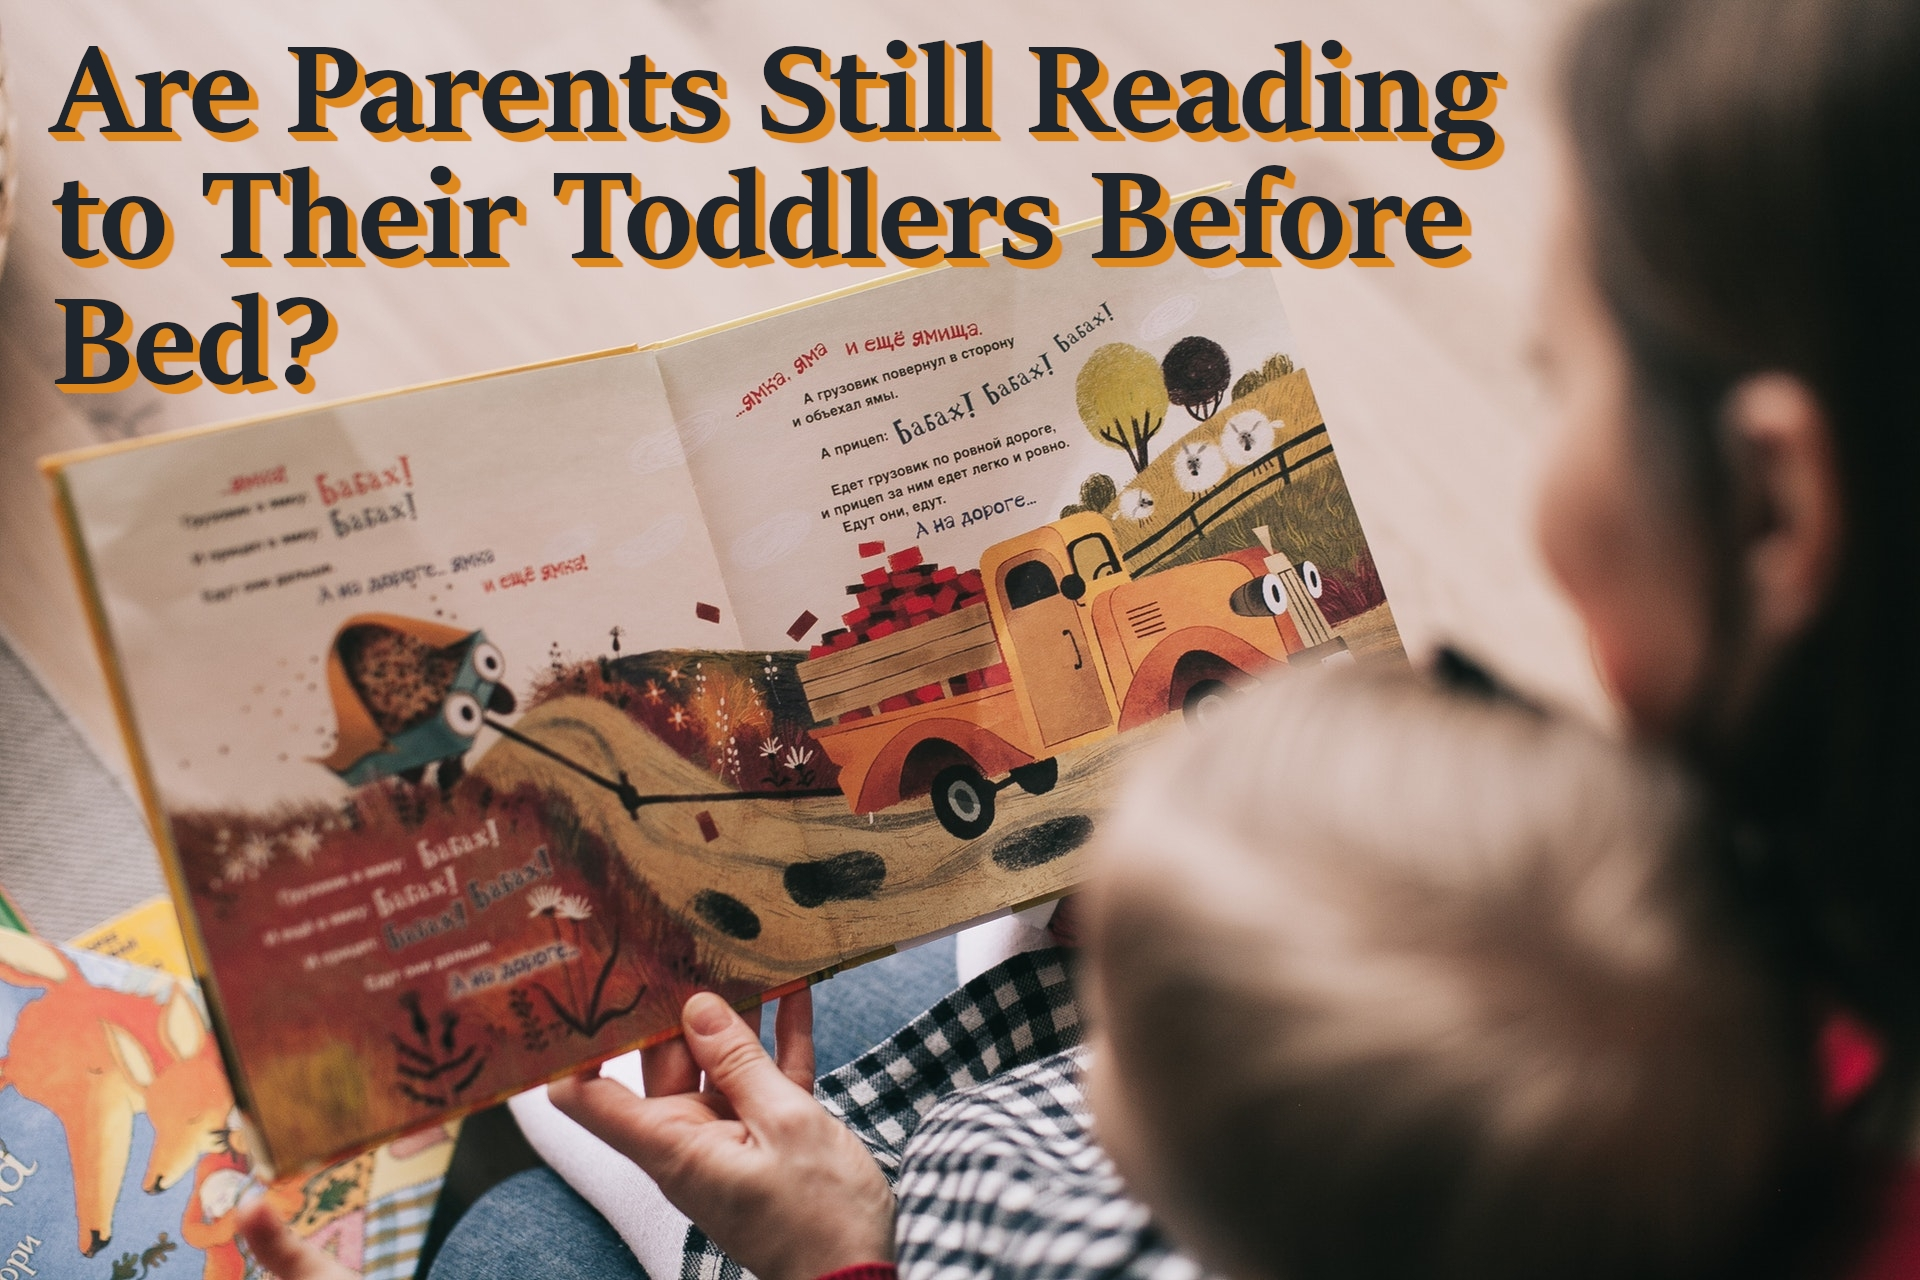 Are Parents Still Reading to Their Toddlers Before Bed?